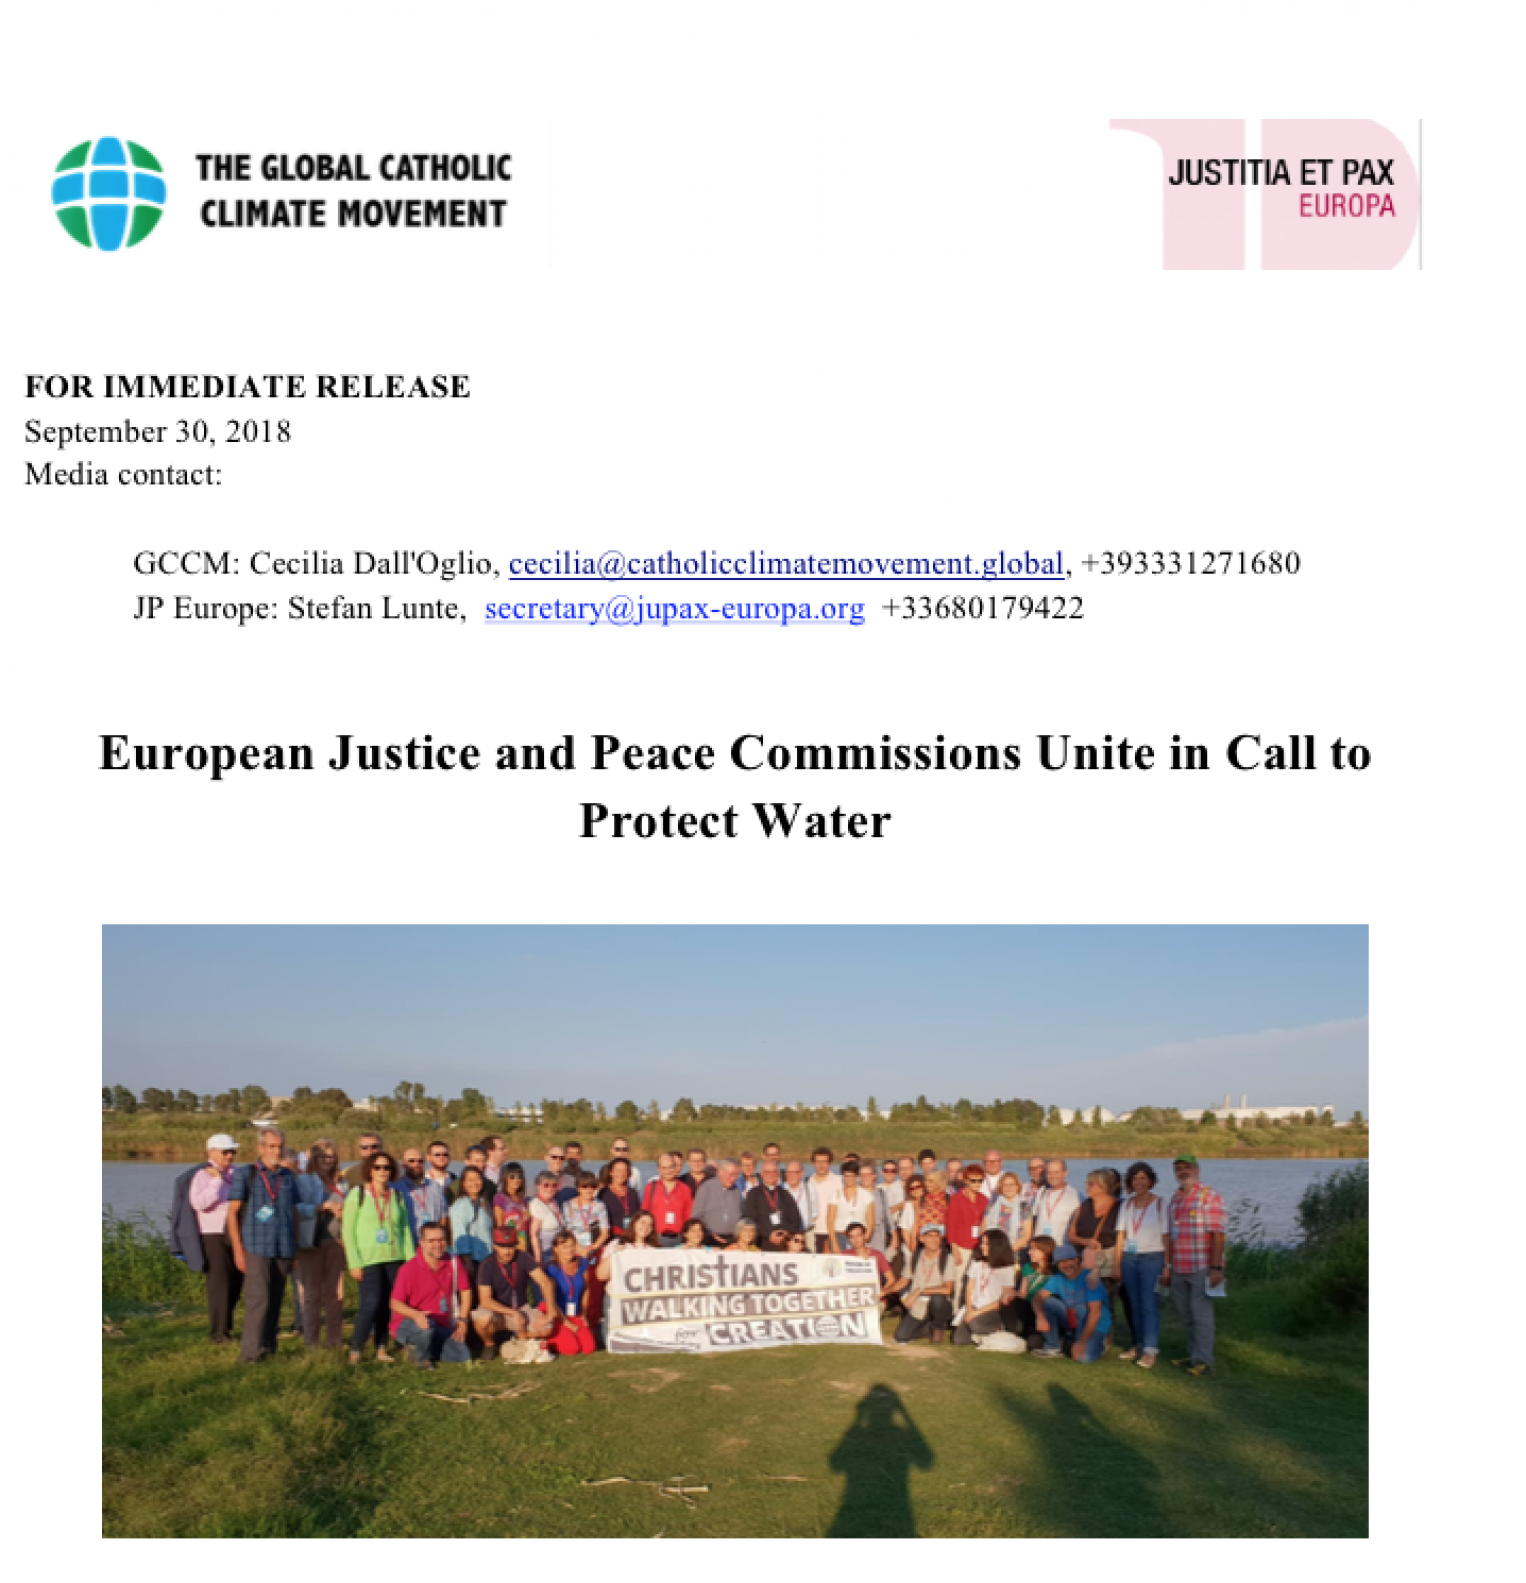 European Justice and Peace Commissions Unite in Call to Protect Water